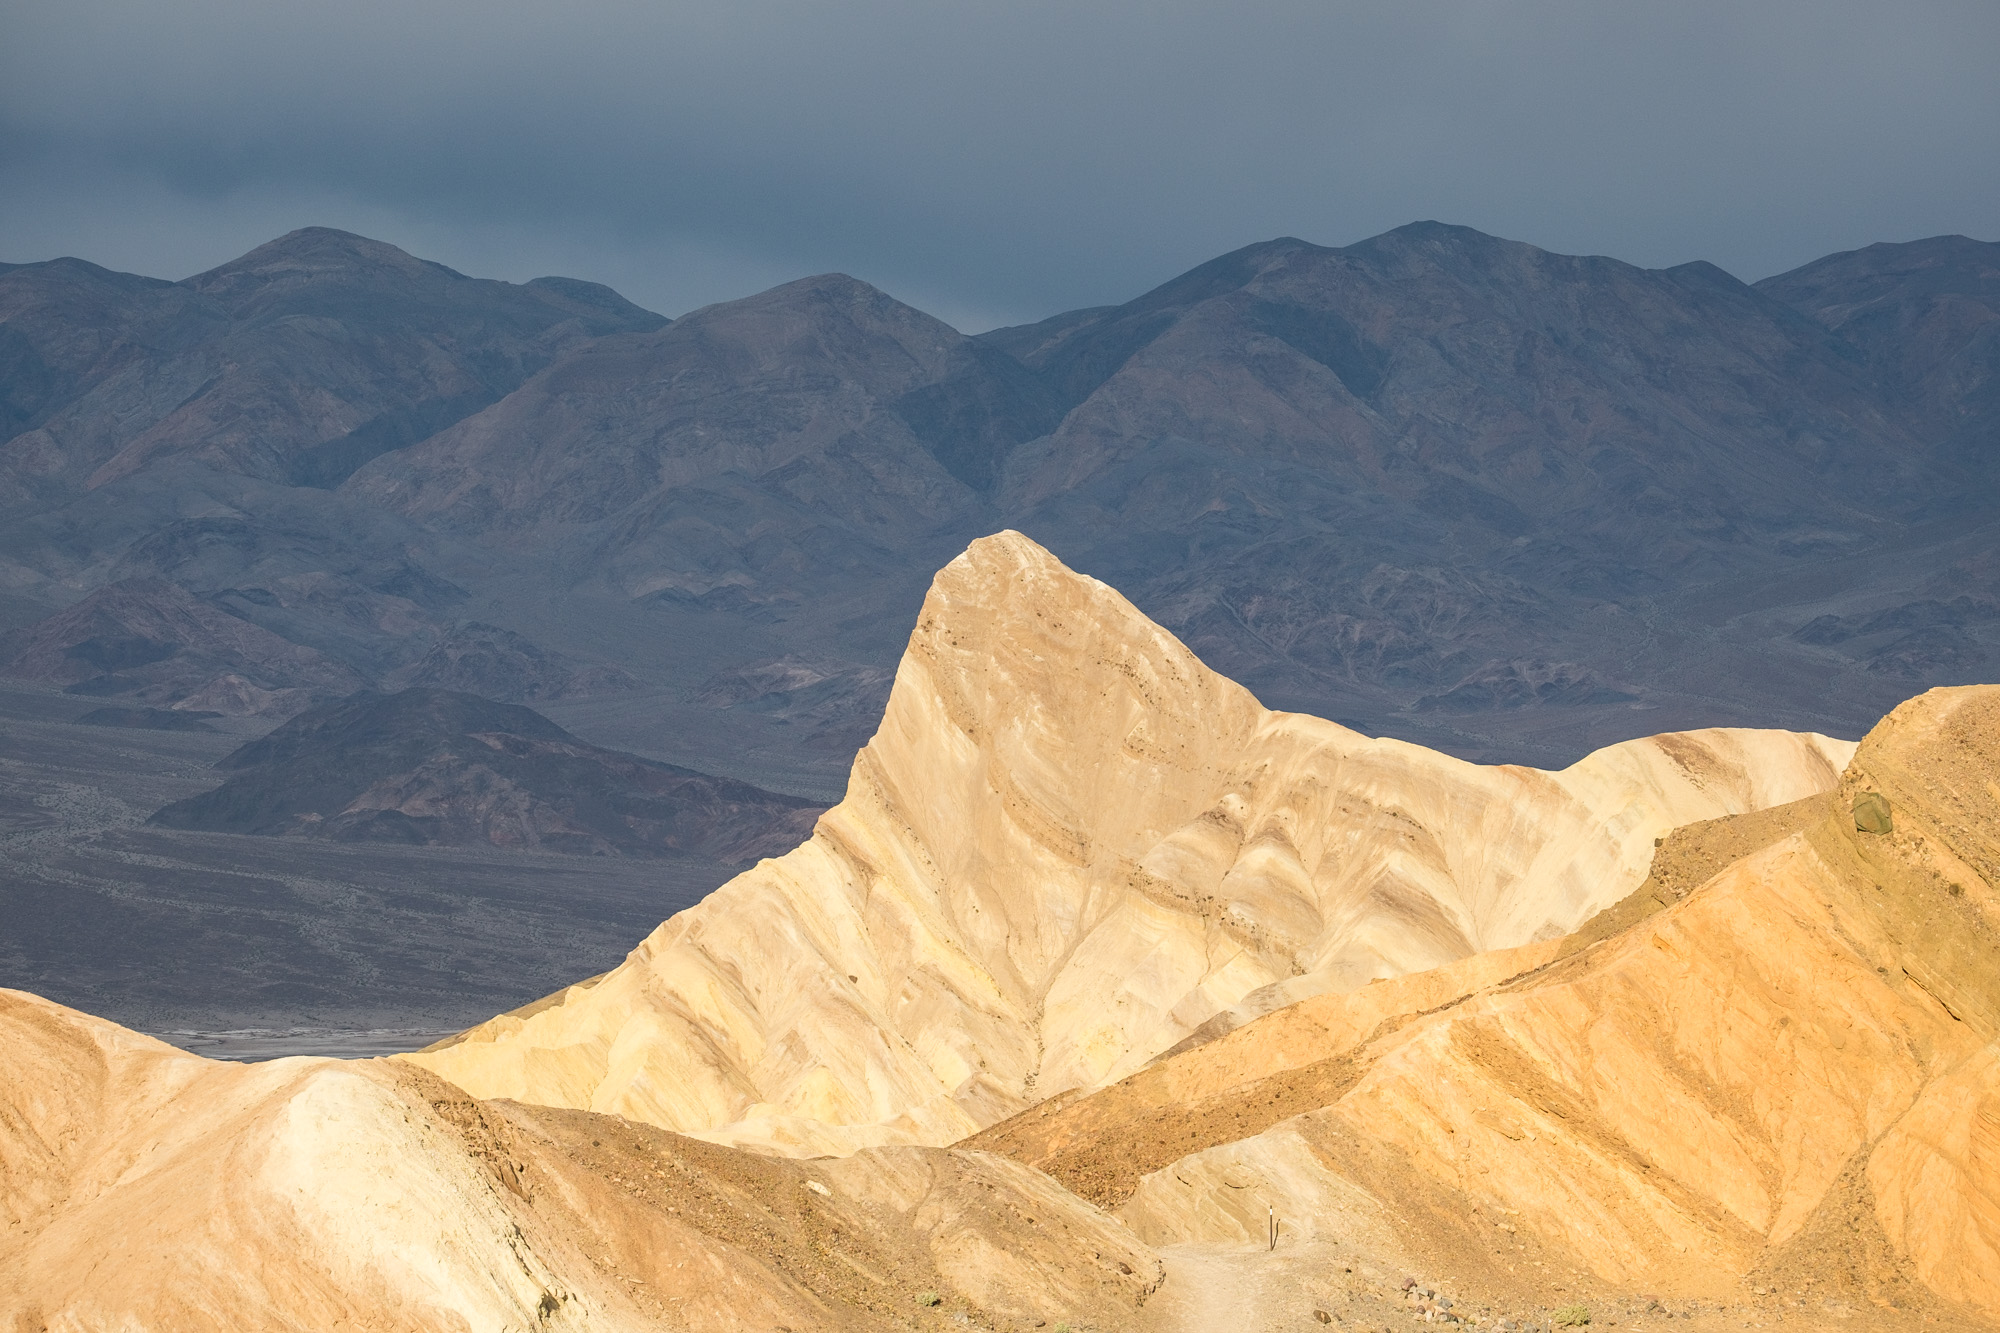 The famous peak that is lit up golden tan/yellow during sunrise at Zabriskie Point.